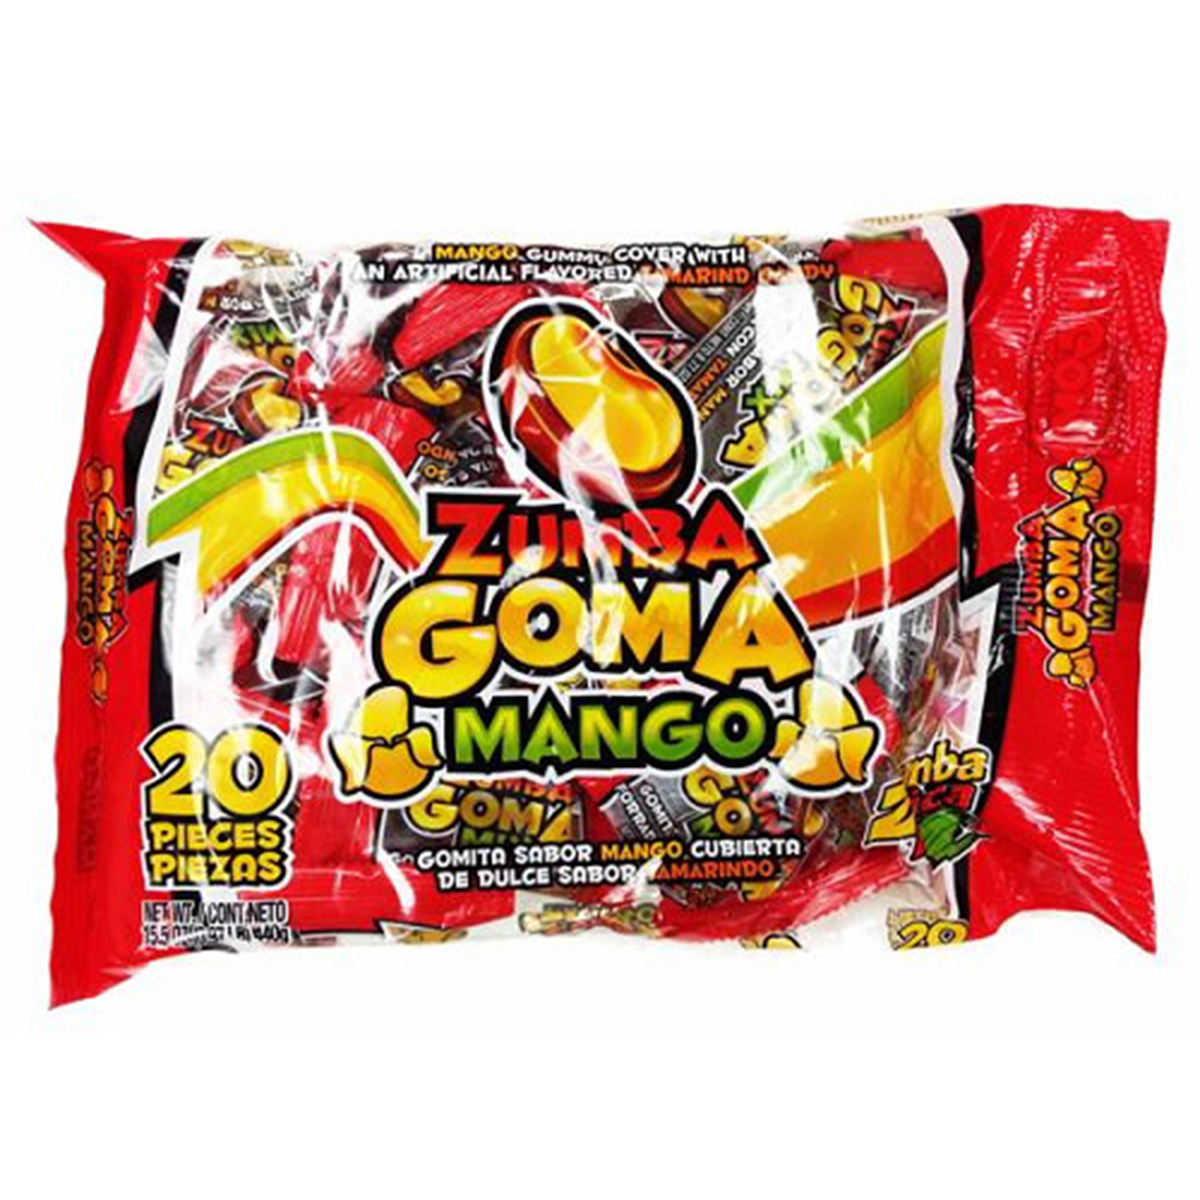 ZUMBA PICA ZUMBA GOMA MANGO Bag ( 20 in a Pack )